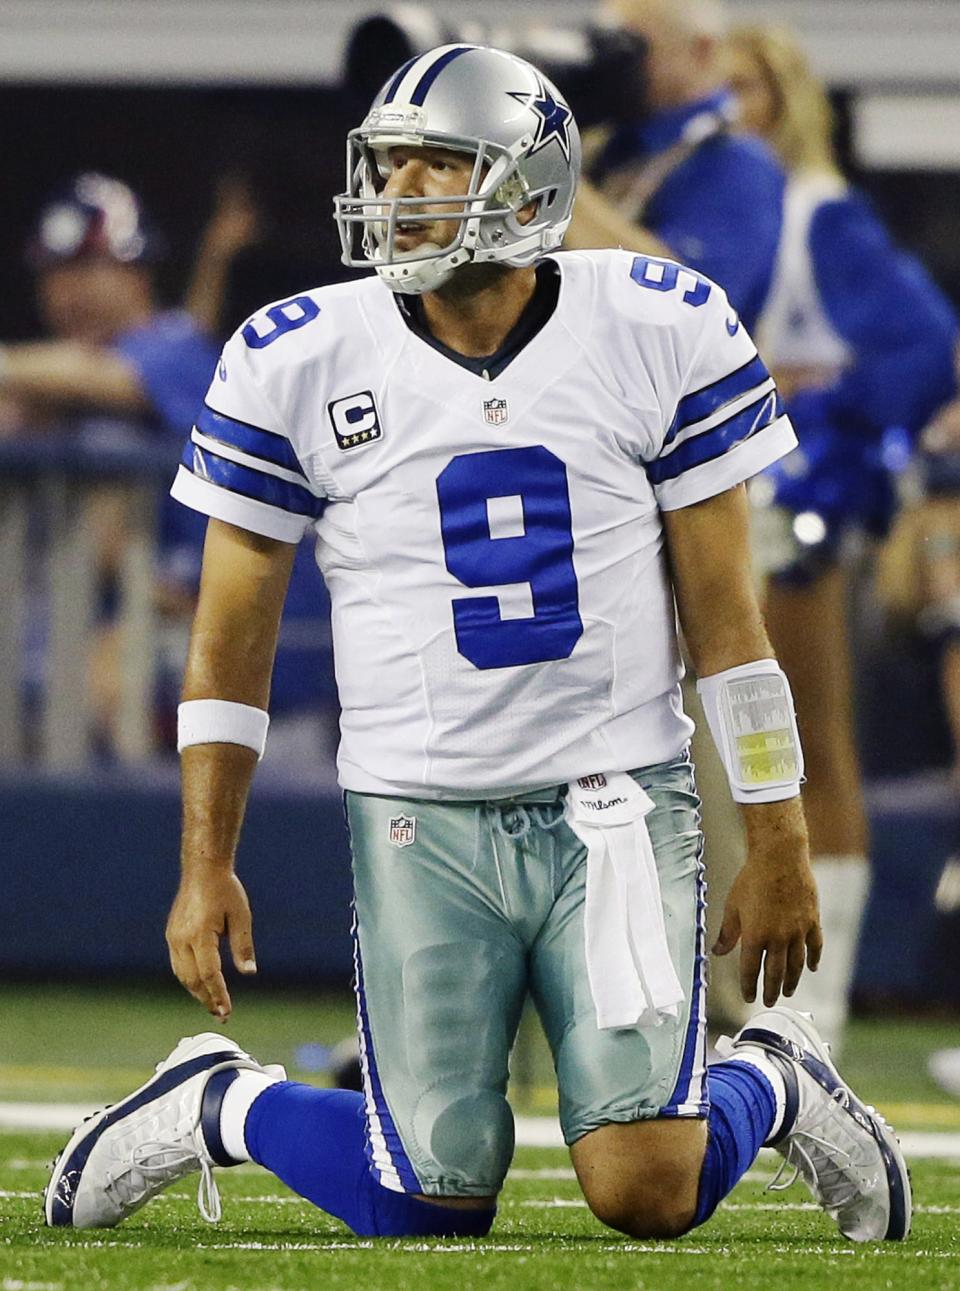 Dallas Cowboys quarterback Tony Romo kneels on the field after throwing an interception to New York Giants safety Ryan Mundy (21) during the first half of an NFL football game, Sunday, Sept. 8, 2013, in Arlington, Texas. (AP Photo/Tony Gutierrez)